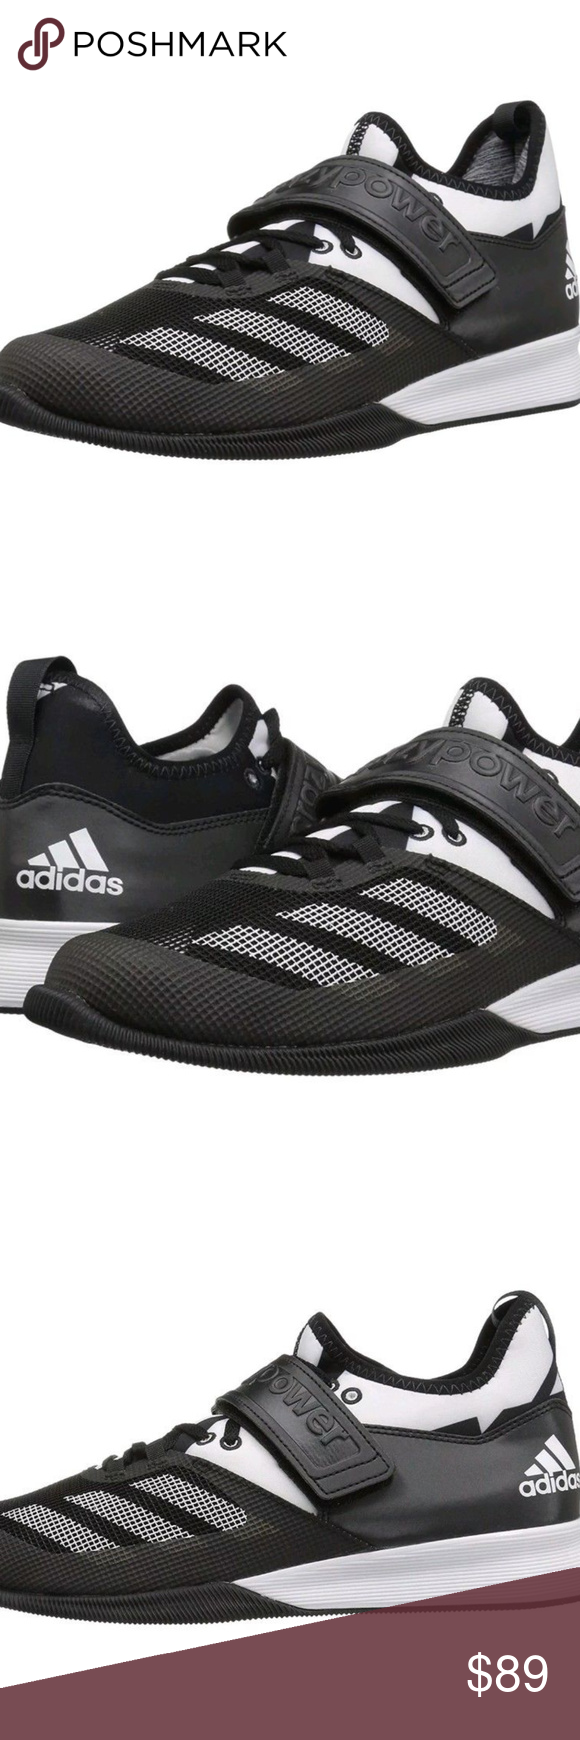 Adidas performance folle potere di sollevamento pesi nwt di sollevamento pesi